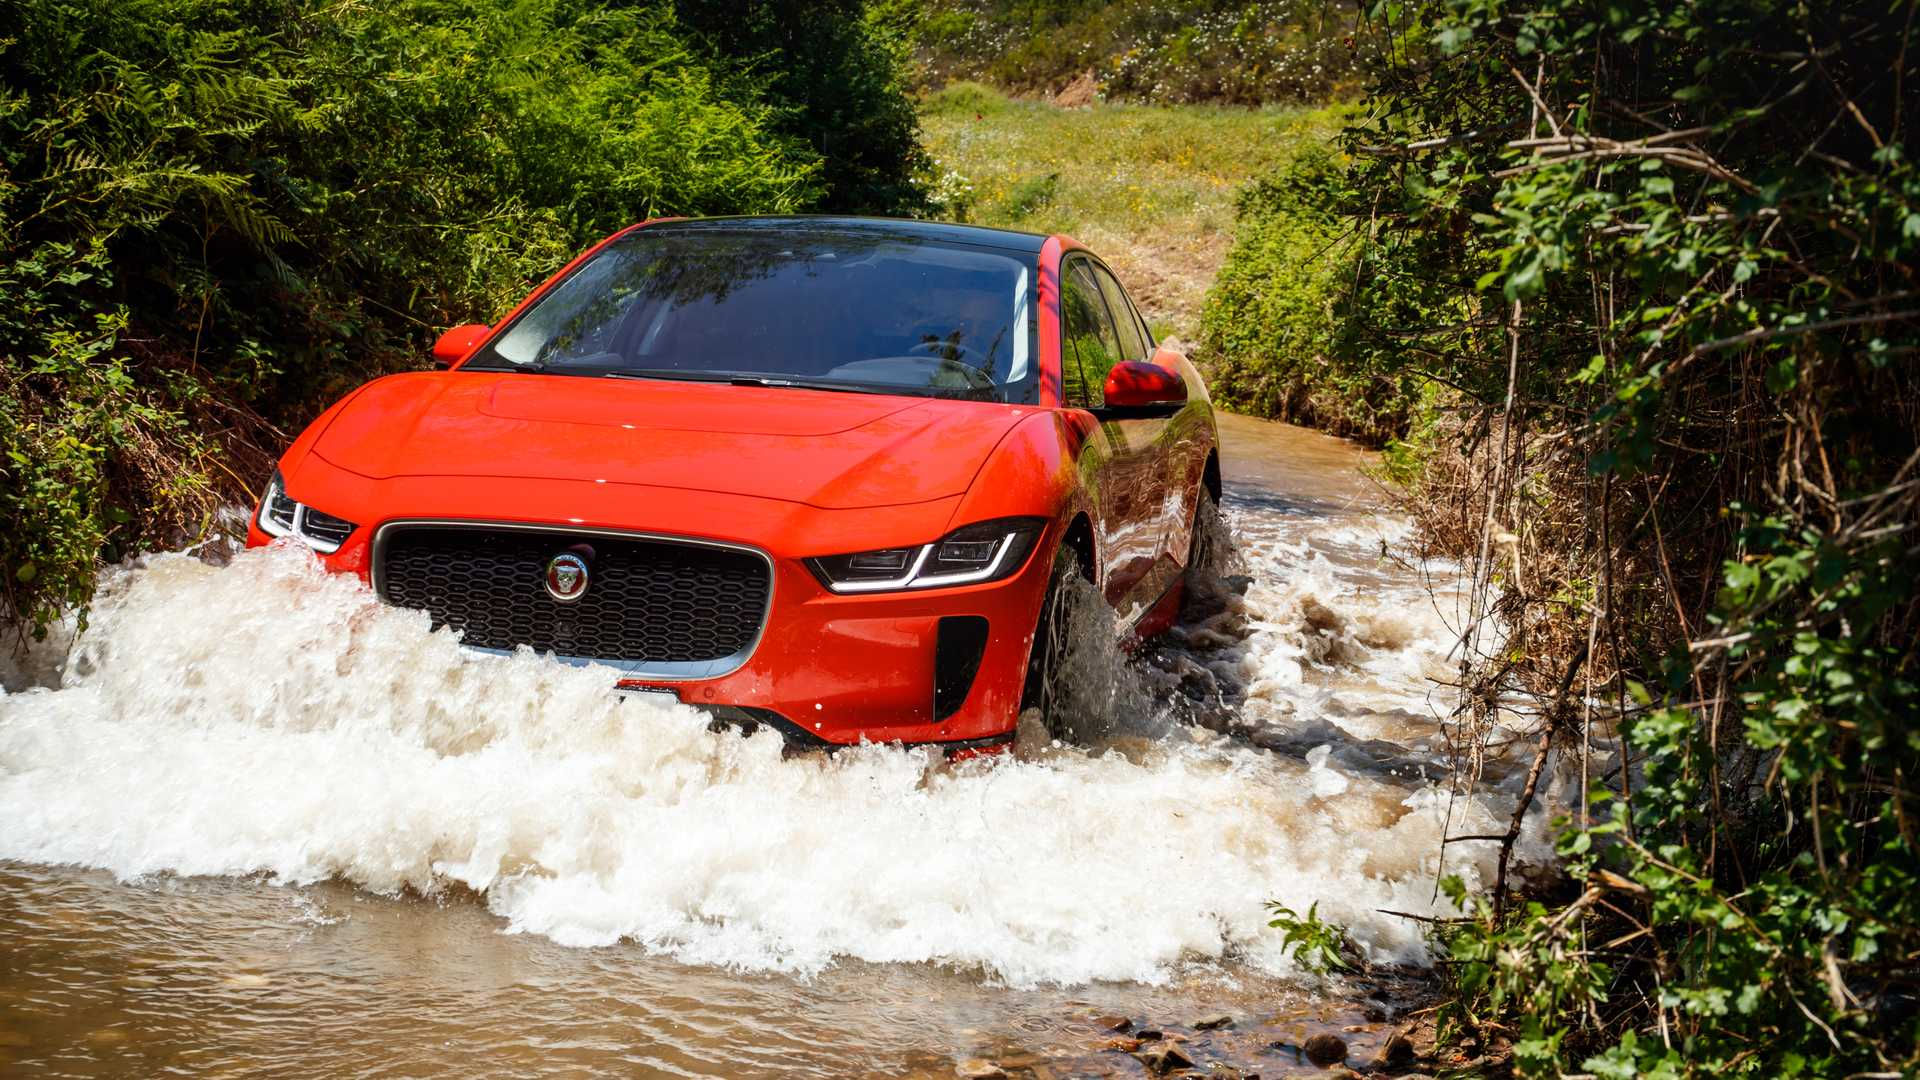 Jaguar I-PACE Sales Decreased To 903 In August 2019